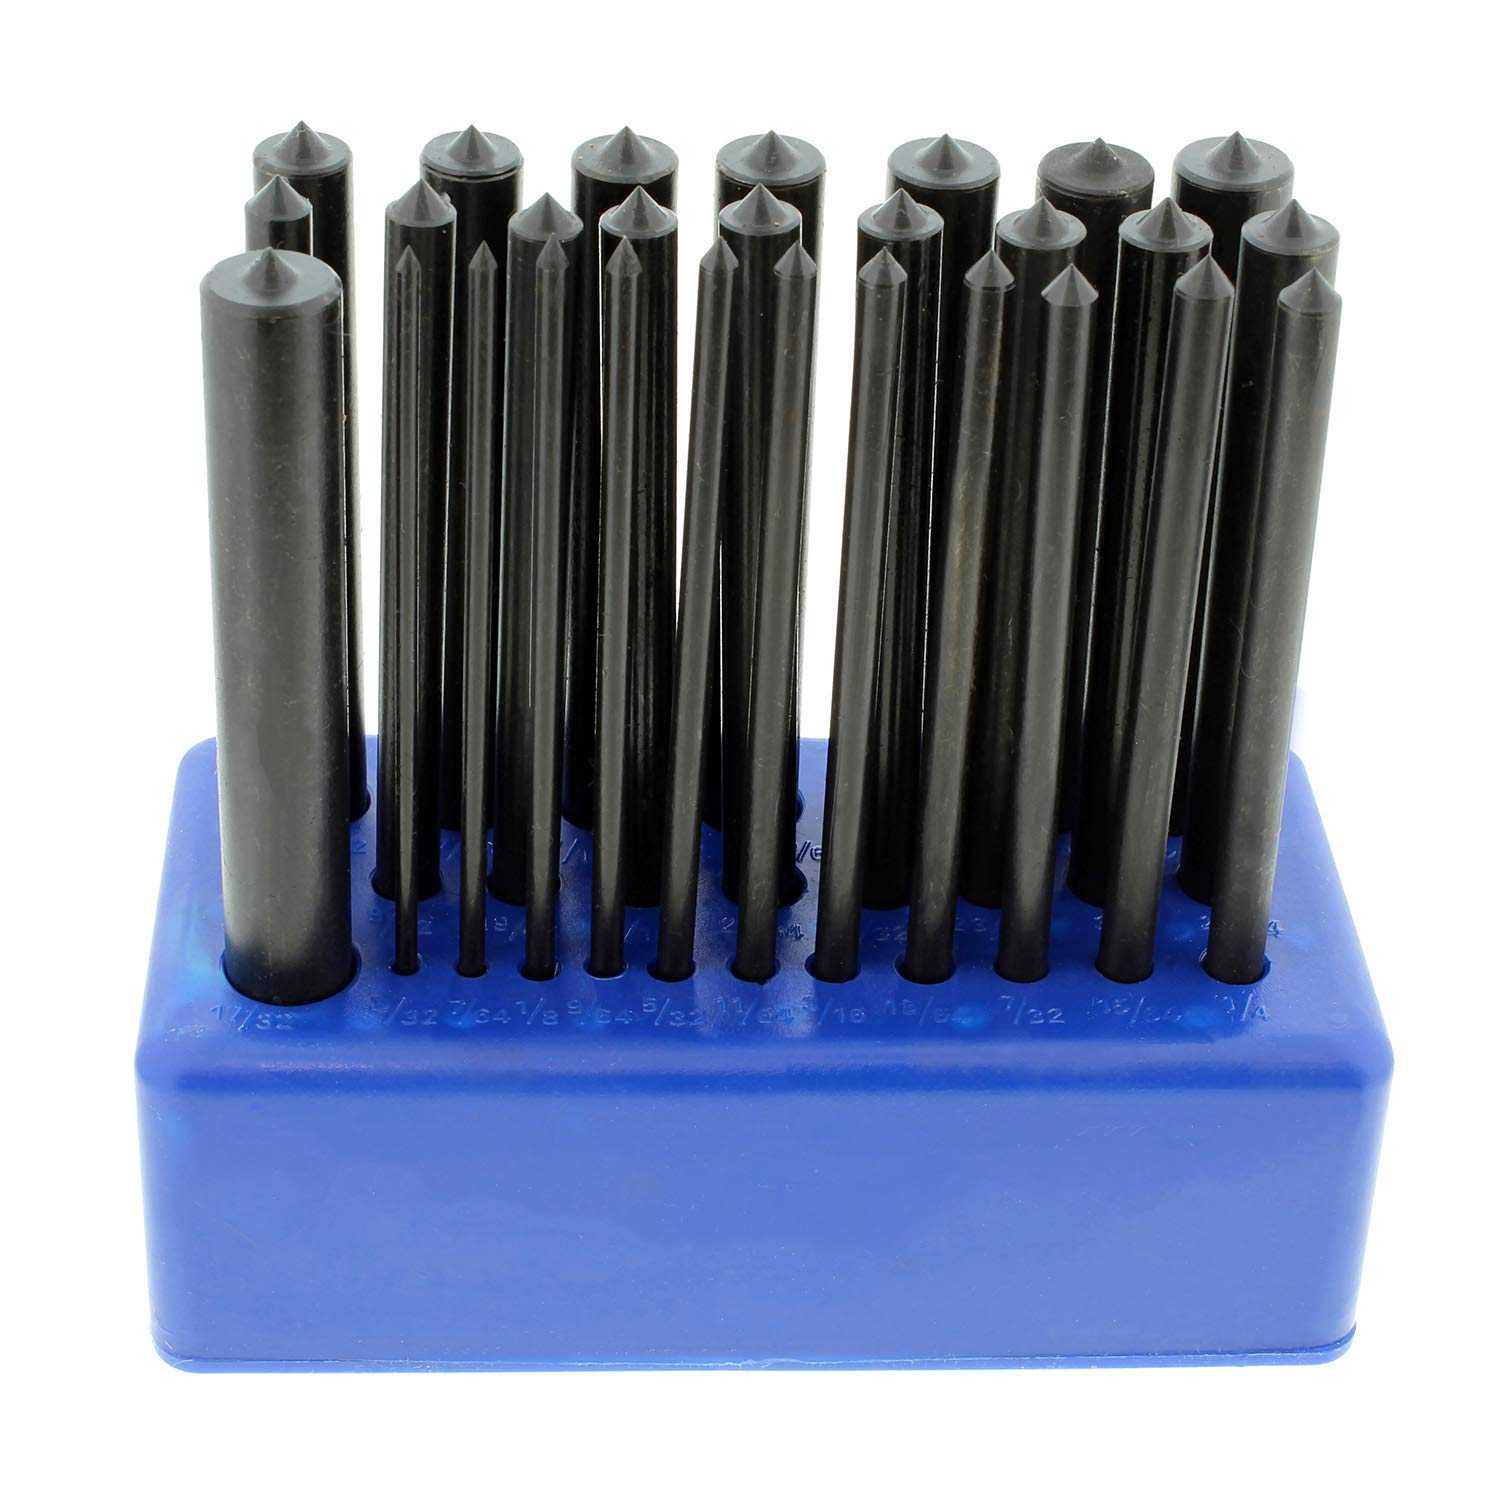 ABN Hole Transfer Punch Set for Steel, Wood, Etc - SAE Transfer Set - 28 Piece Transfer Punch Set 3/32 to 17/32in by ABN